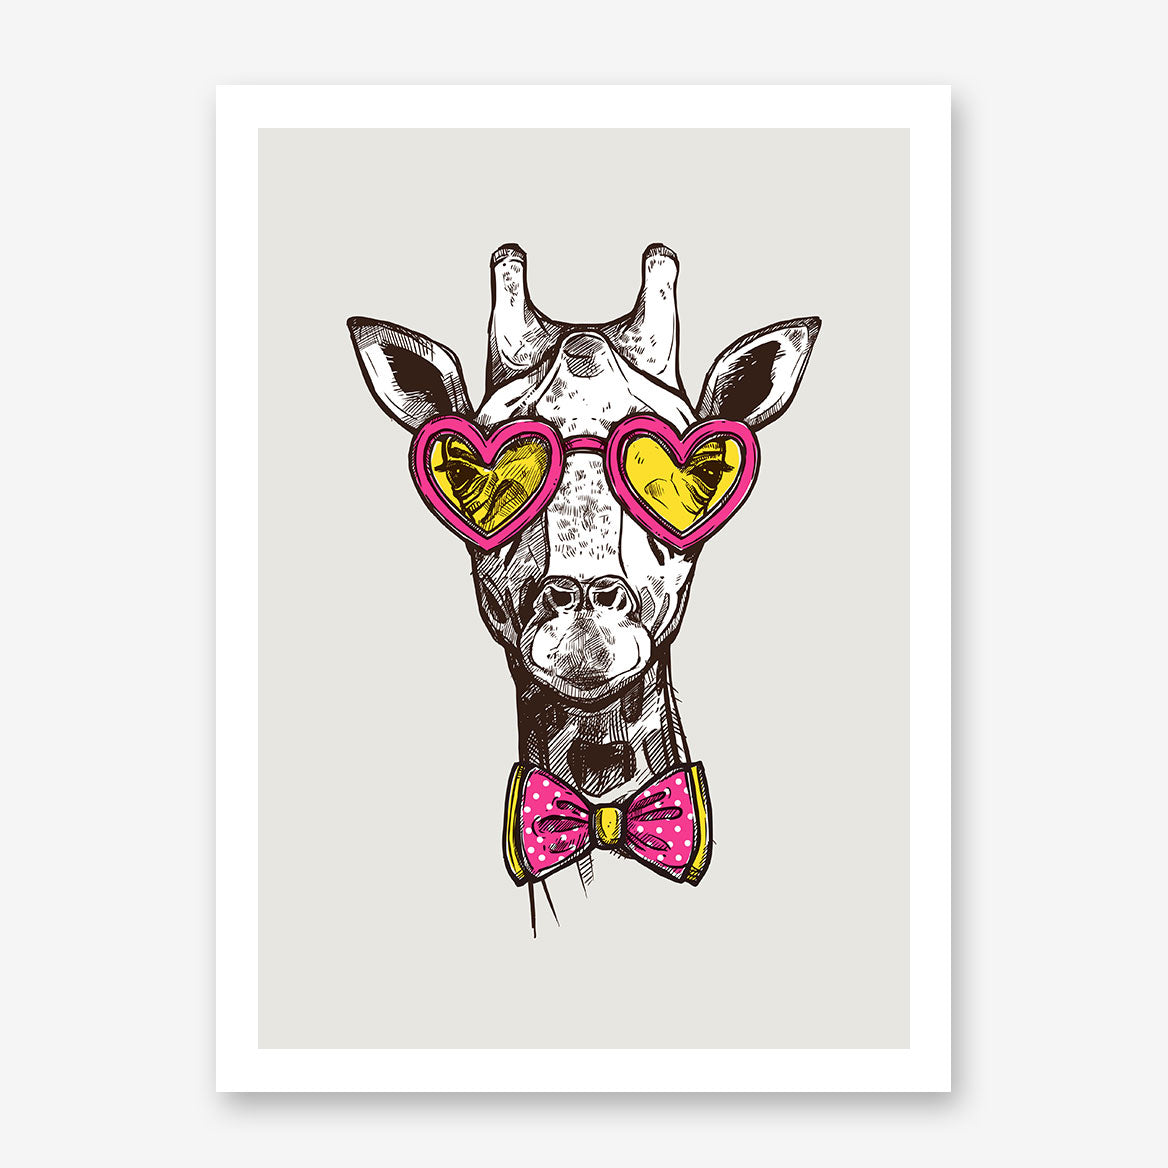 Sketch poster print with a cool giraffe with heart sunglasses and bow tie, on light grey background